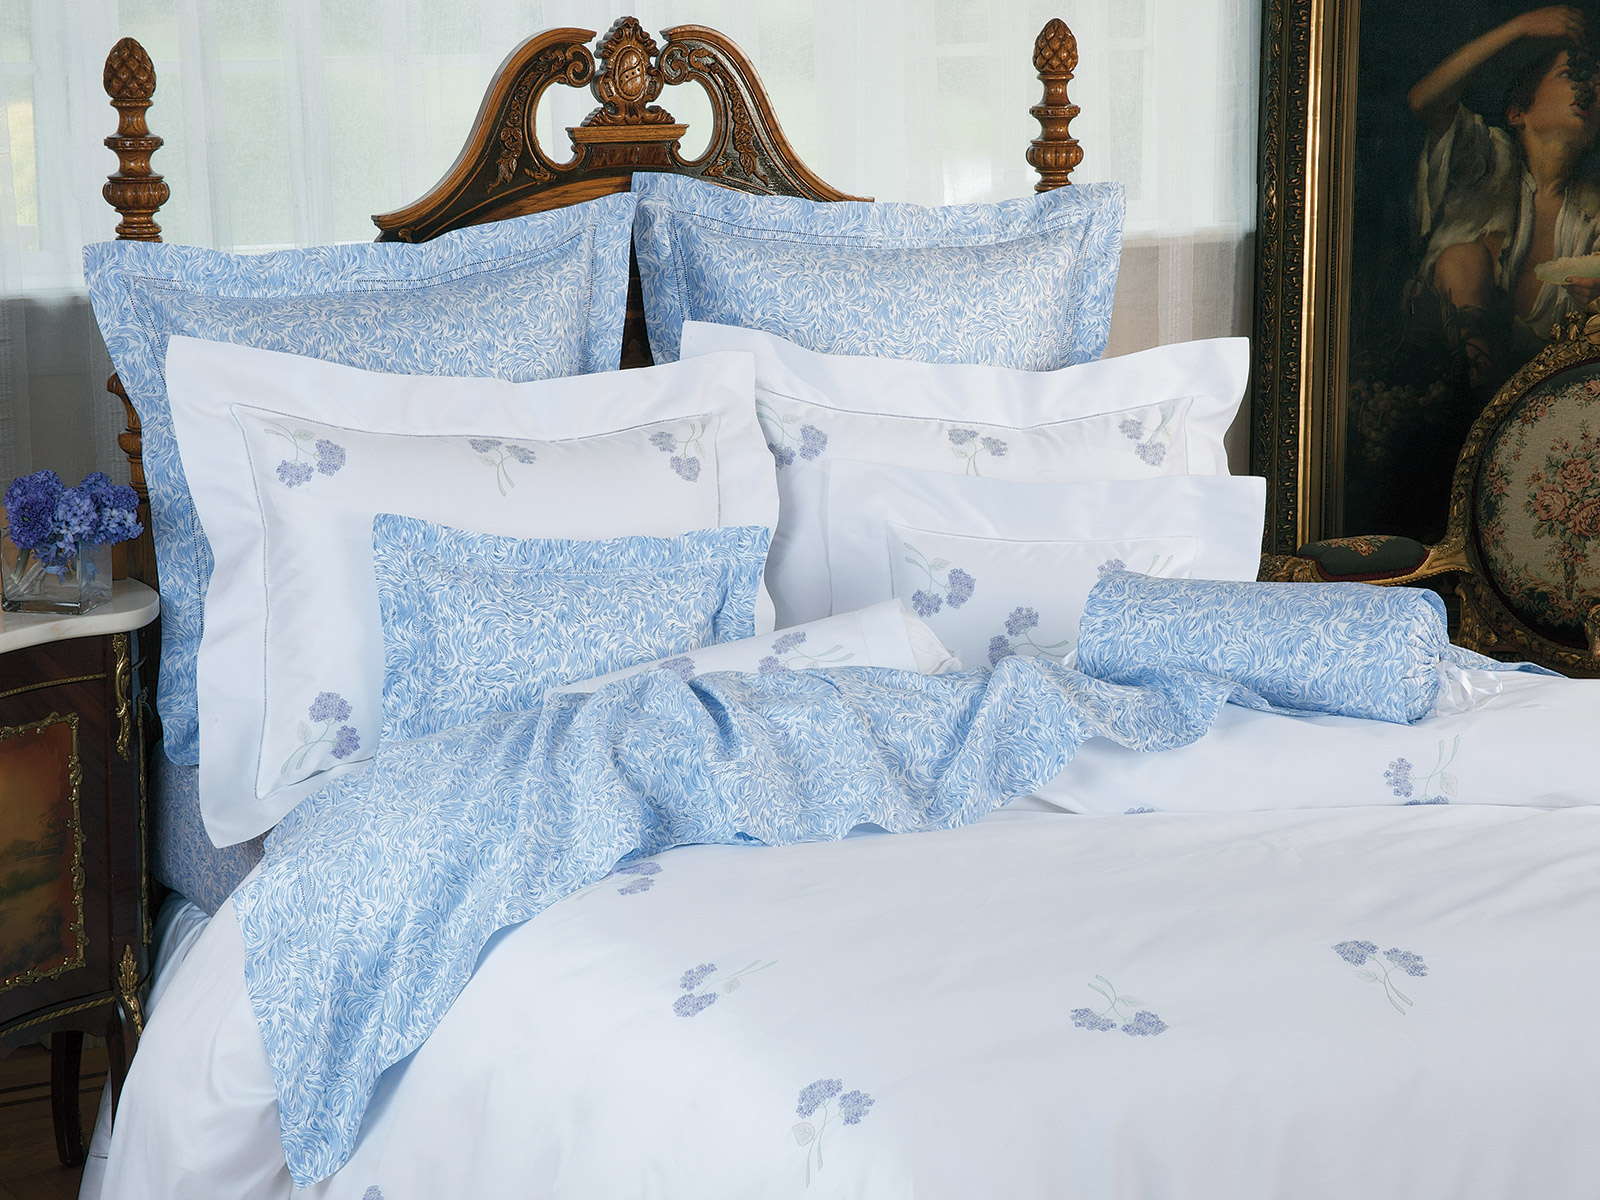 Hydrangea Blossoms Luxury Bedding Italian Bed Linens